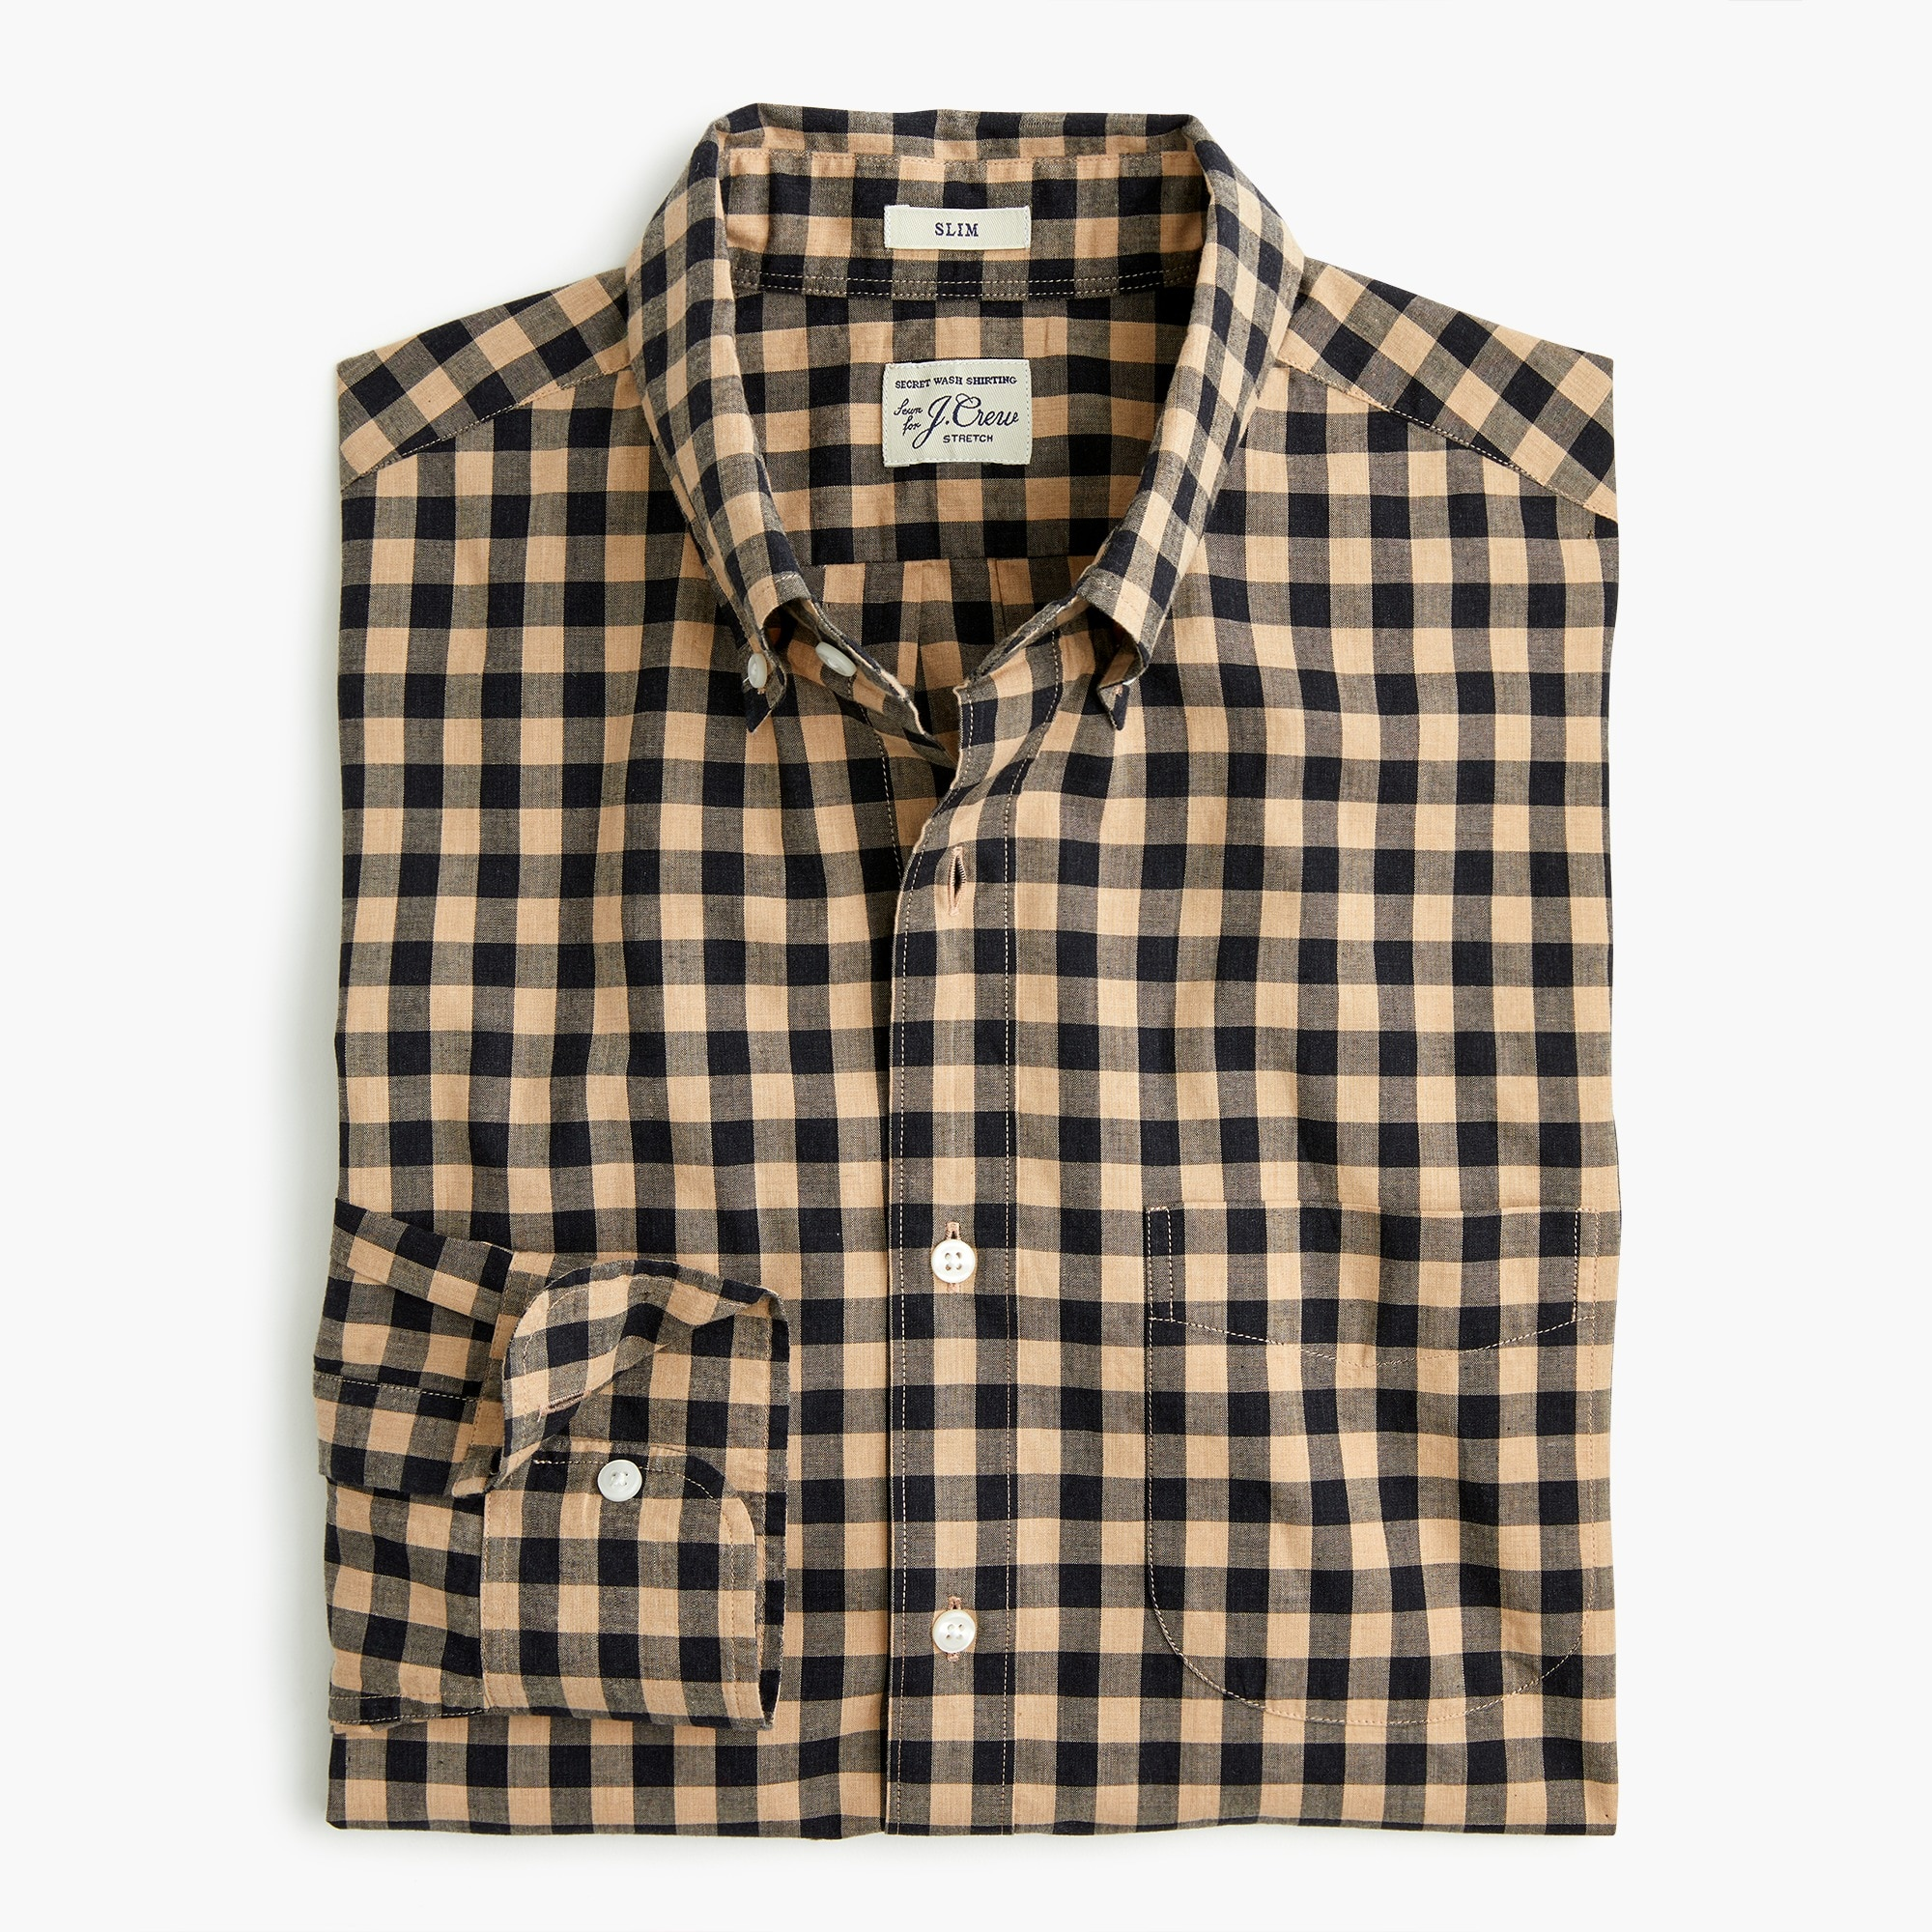 slim stretch secret wash shirt in heather poplin gingham - men's shirts